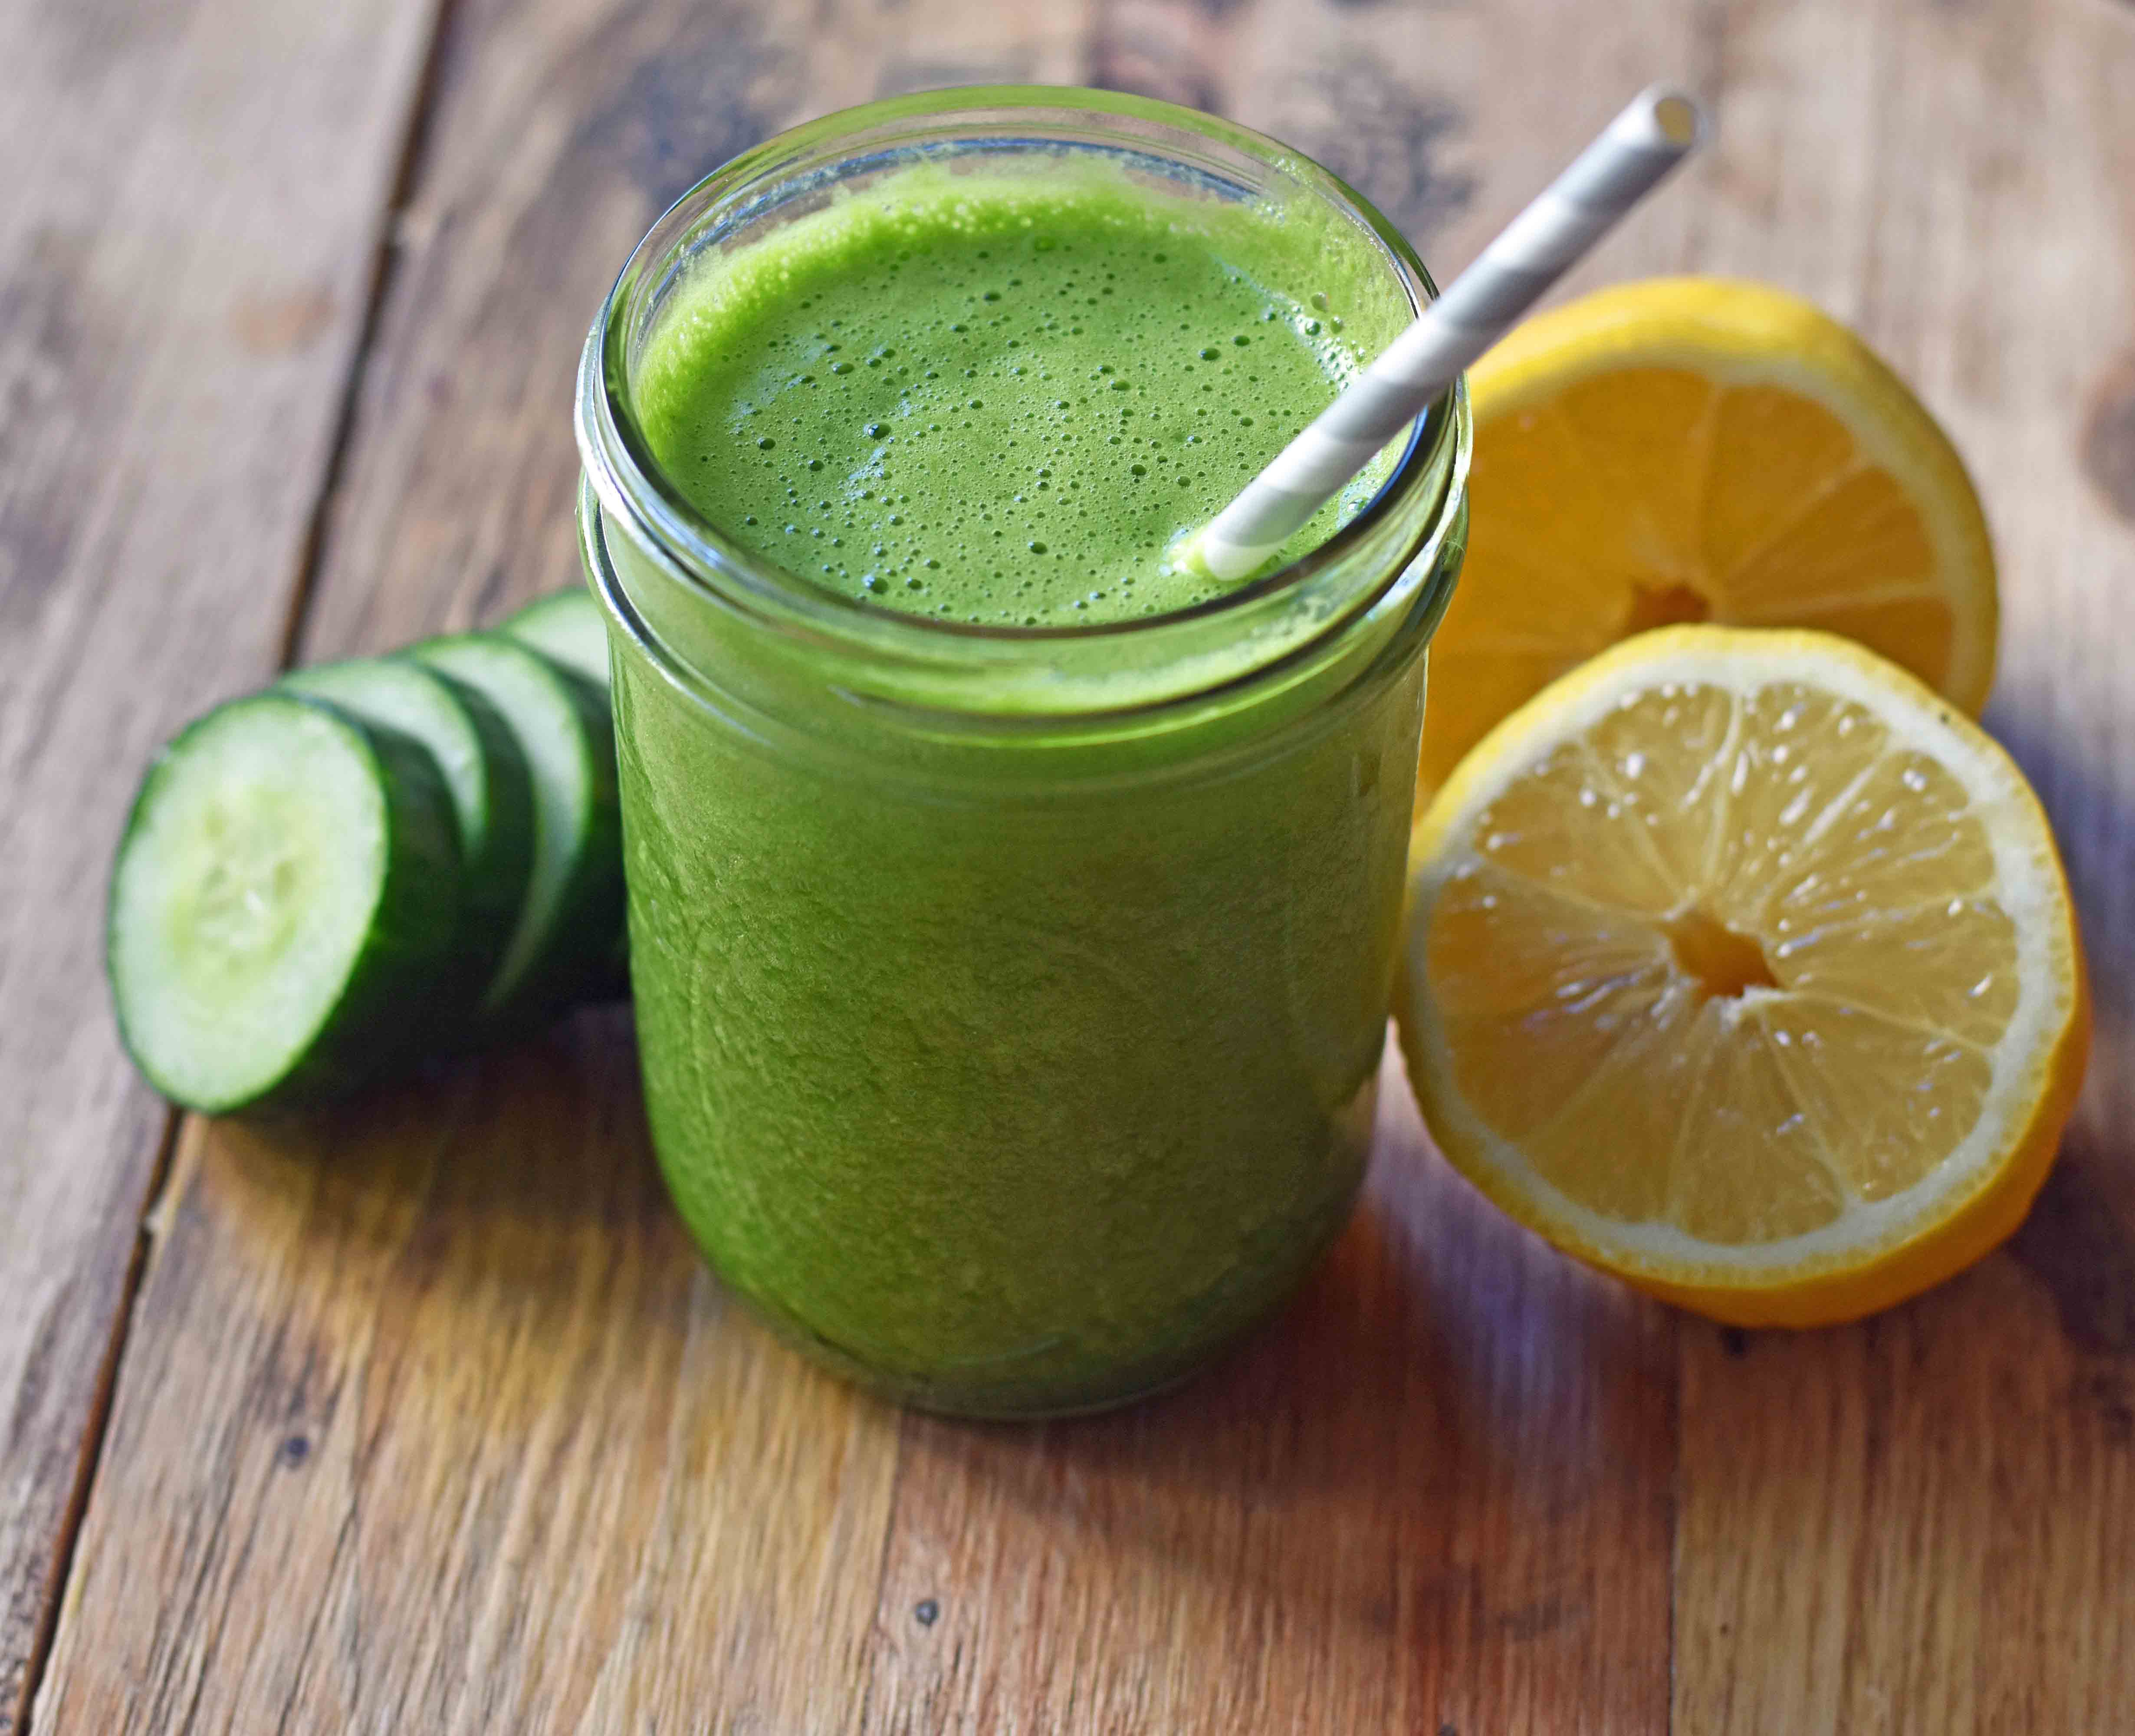 Youthful Glow Green Smoothie. Healthy light and fresh smoothie with greens. Spinach, lemon juice, cucumber, ginger, and banana. www.modernhoney.com